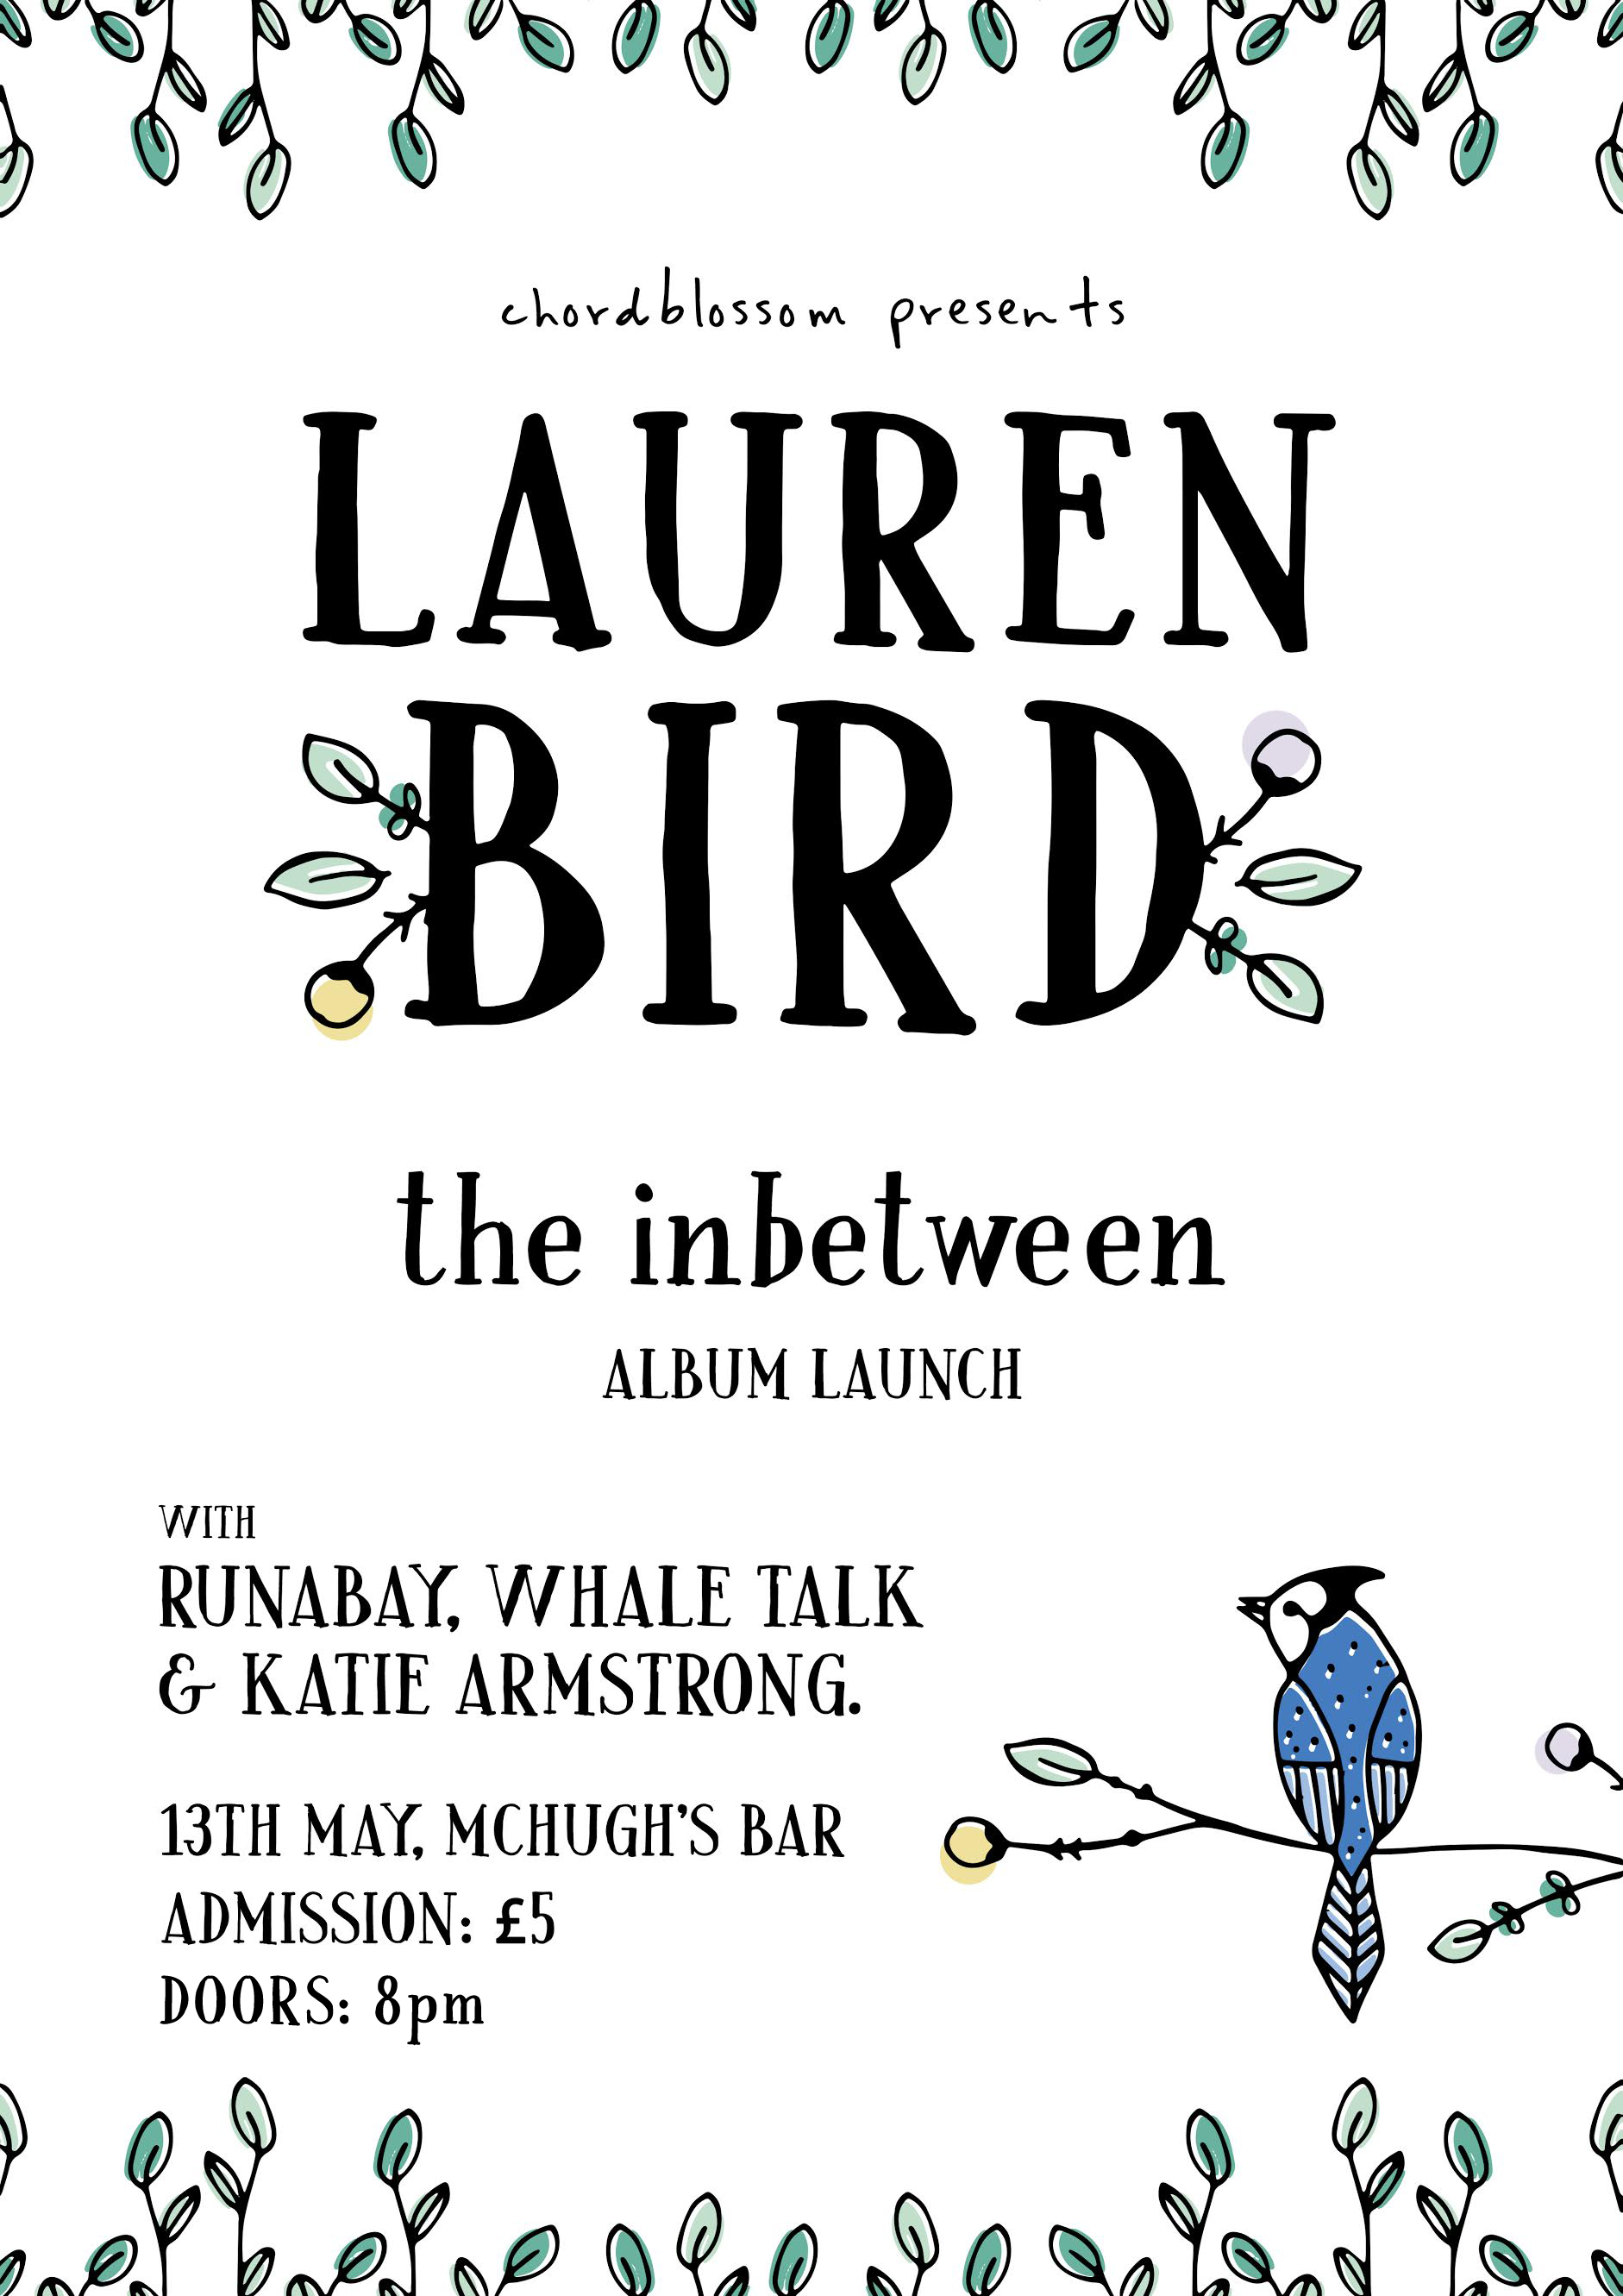 Lauren Bird - The Inbetween Album Launch